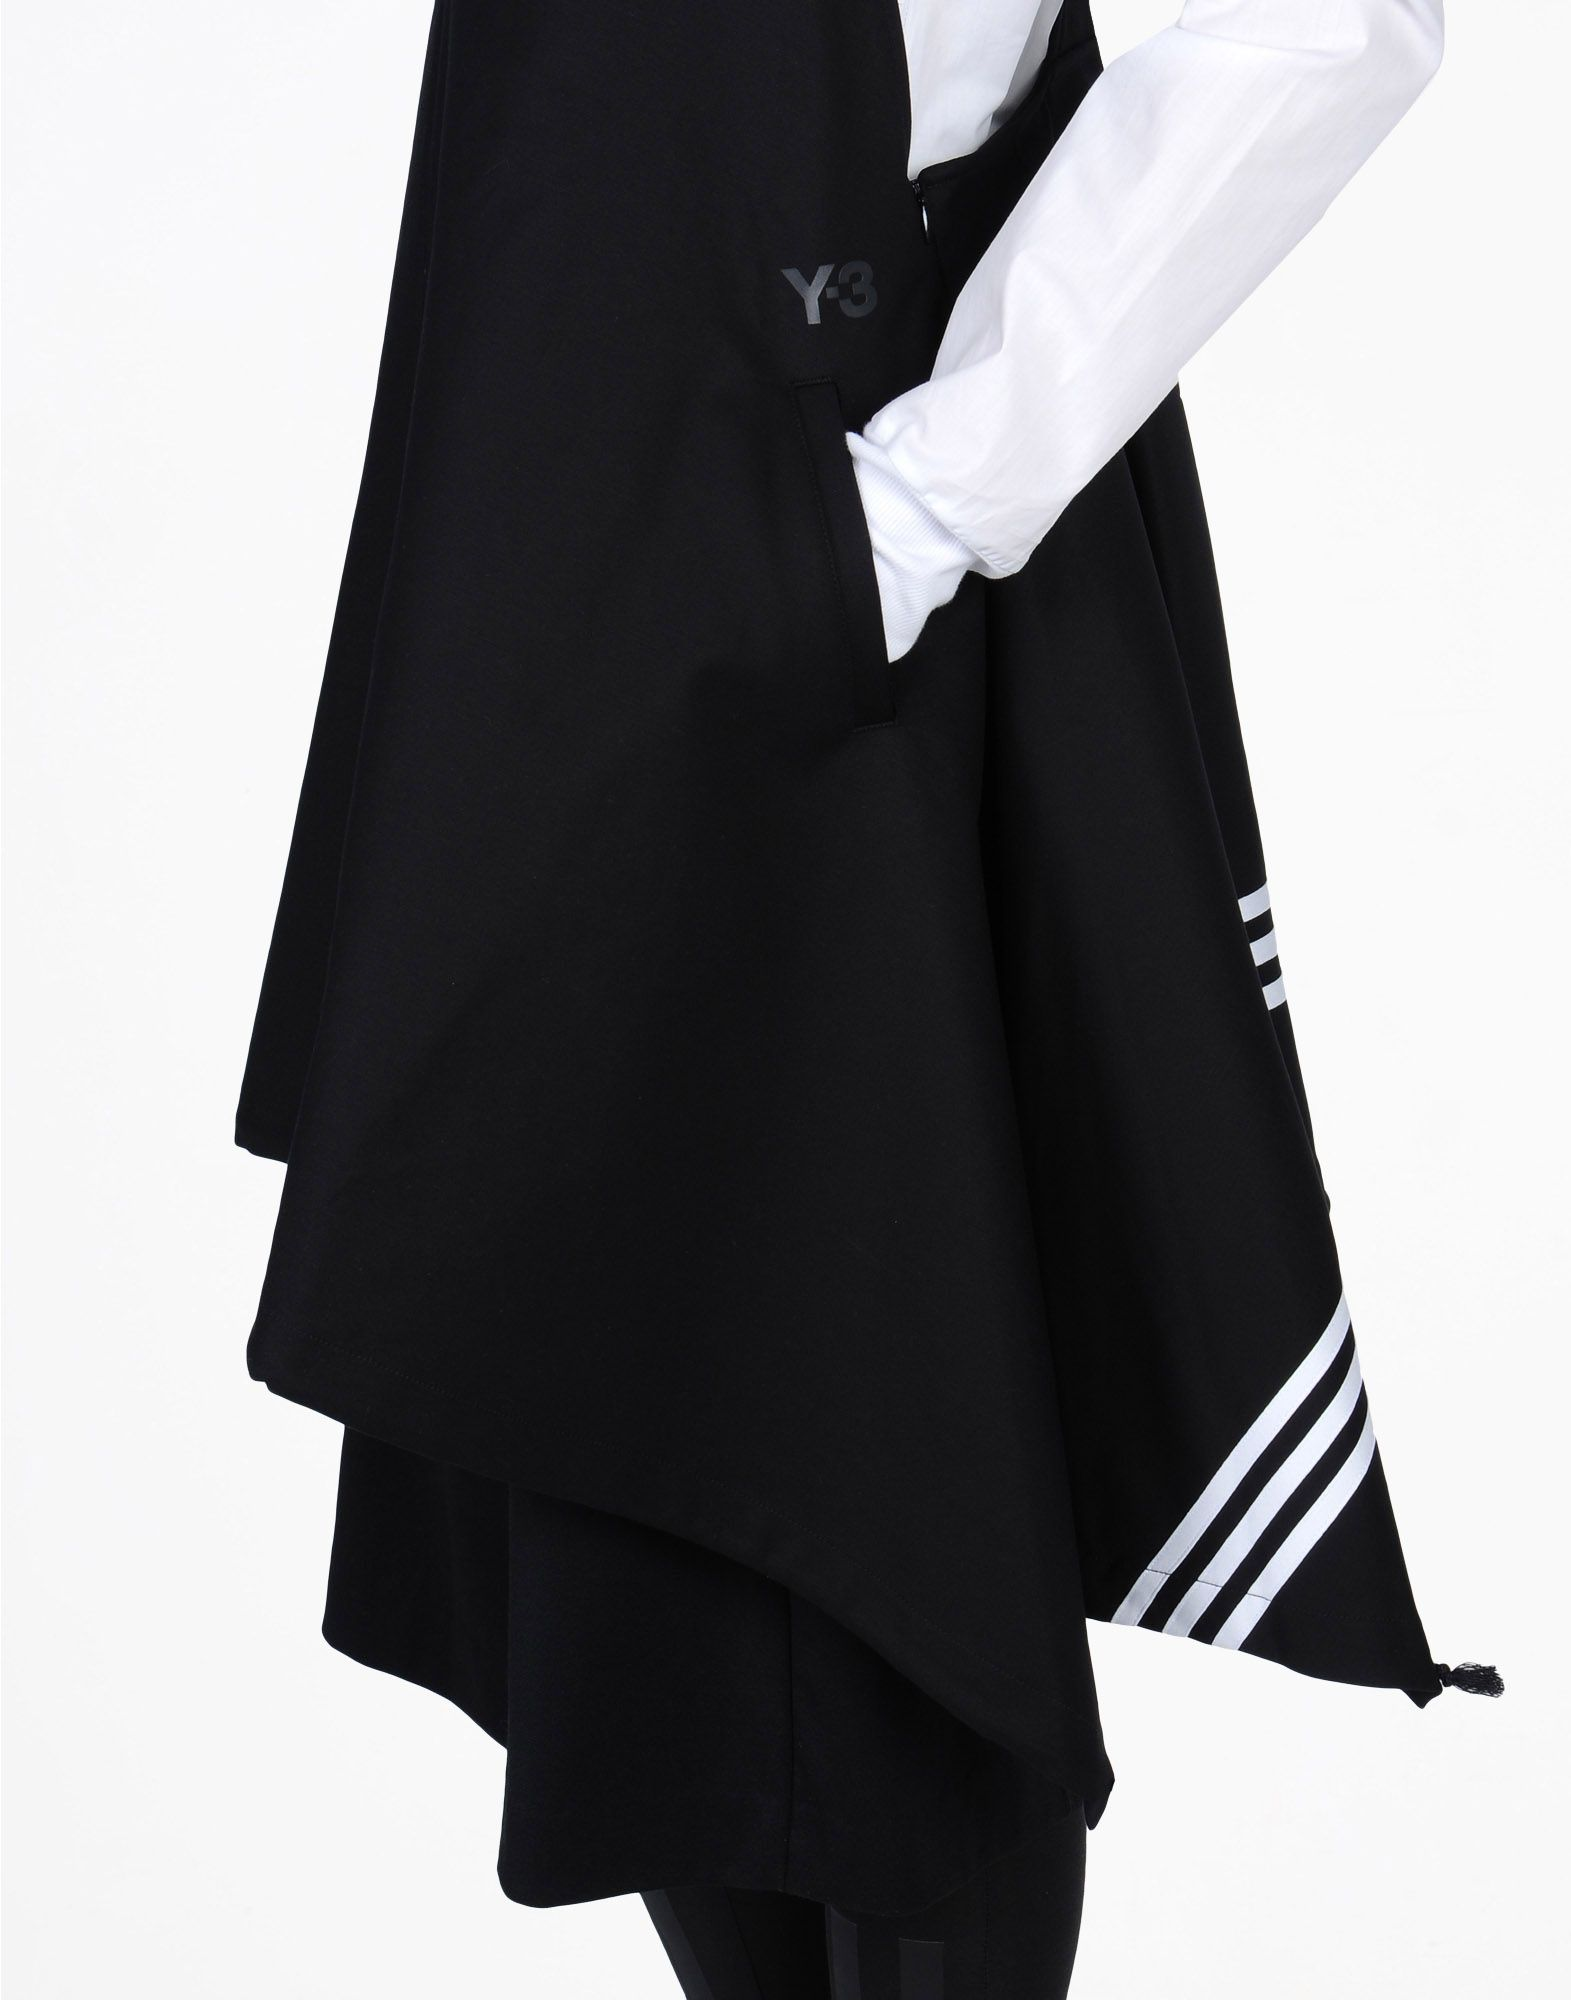 adidas y3 outfit